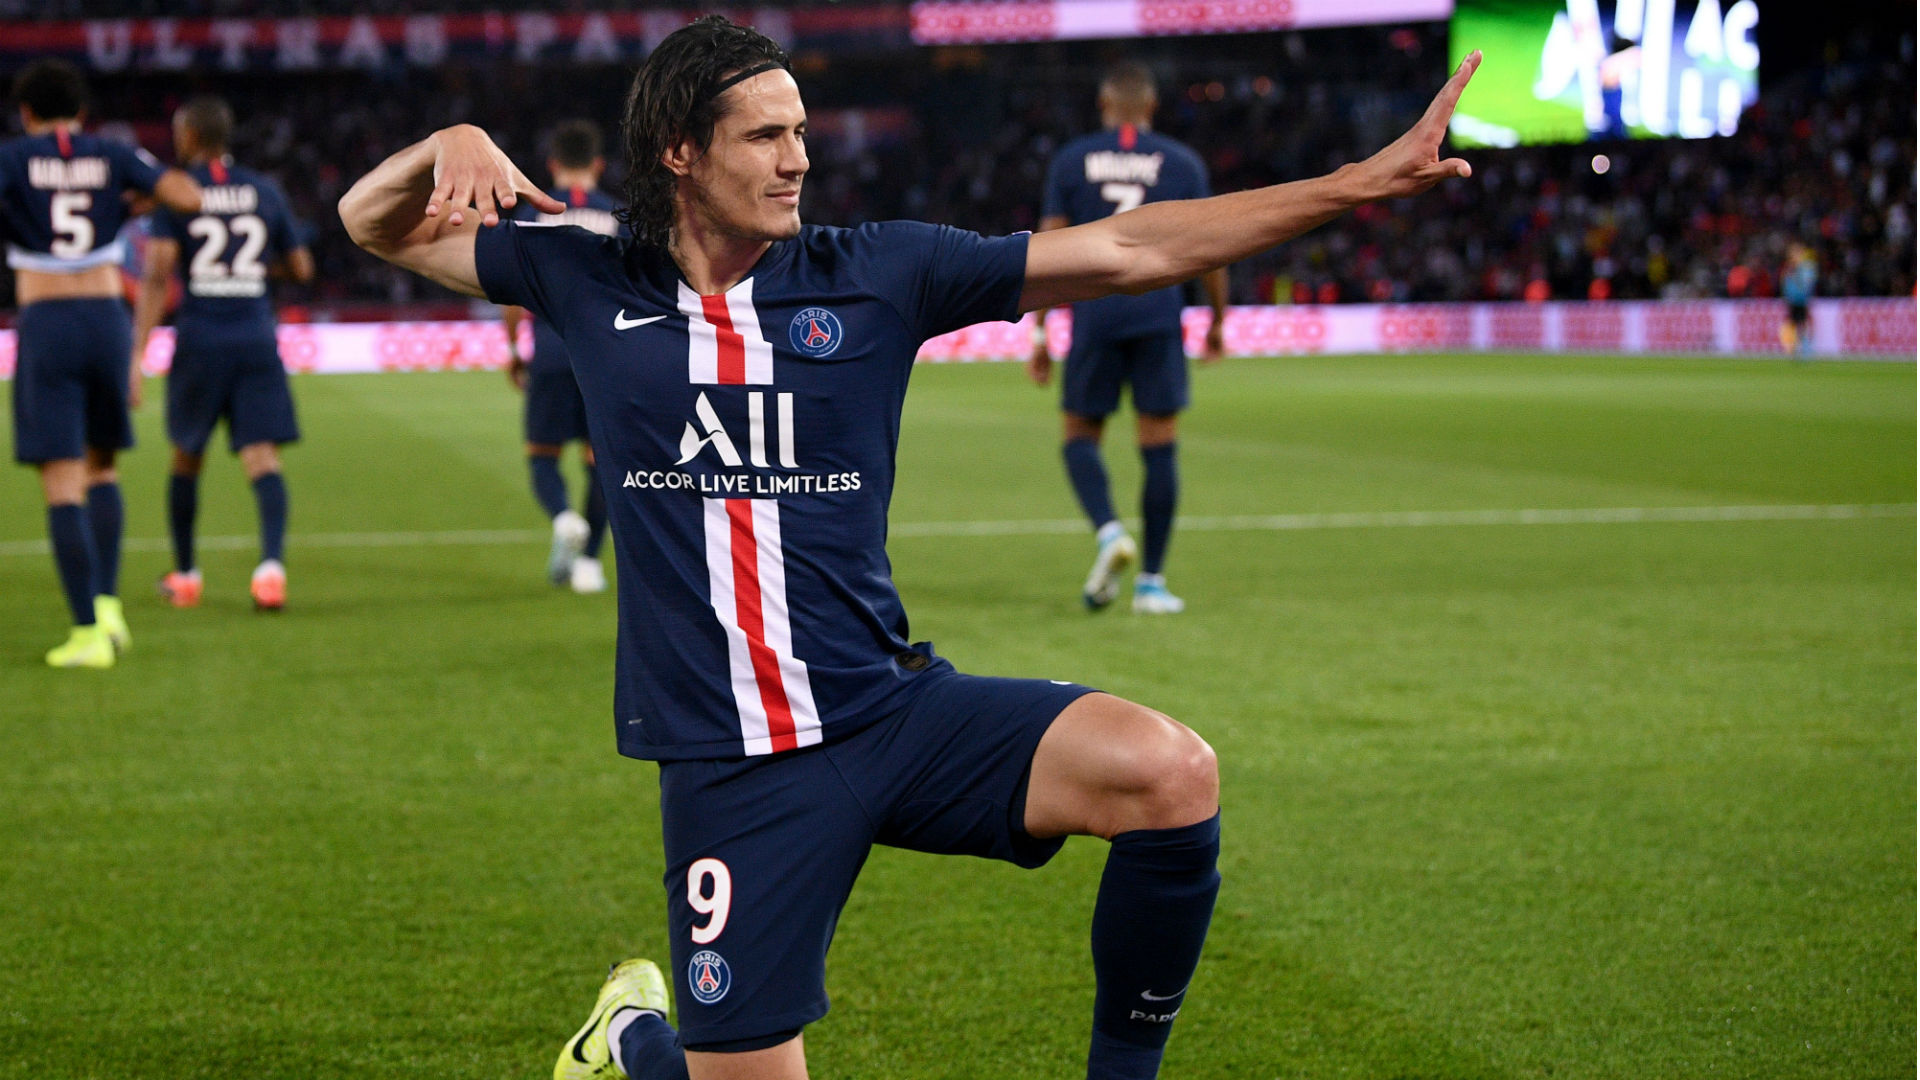 PSG striker Cavani committed to playing on in Europe